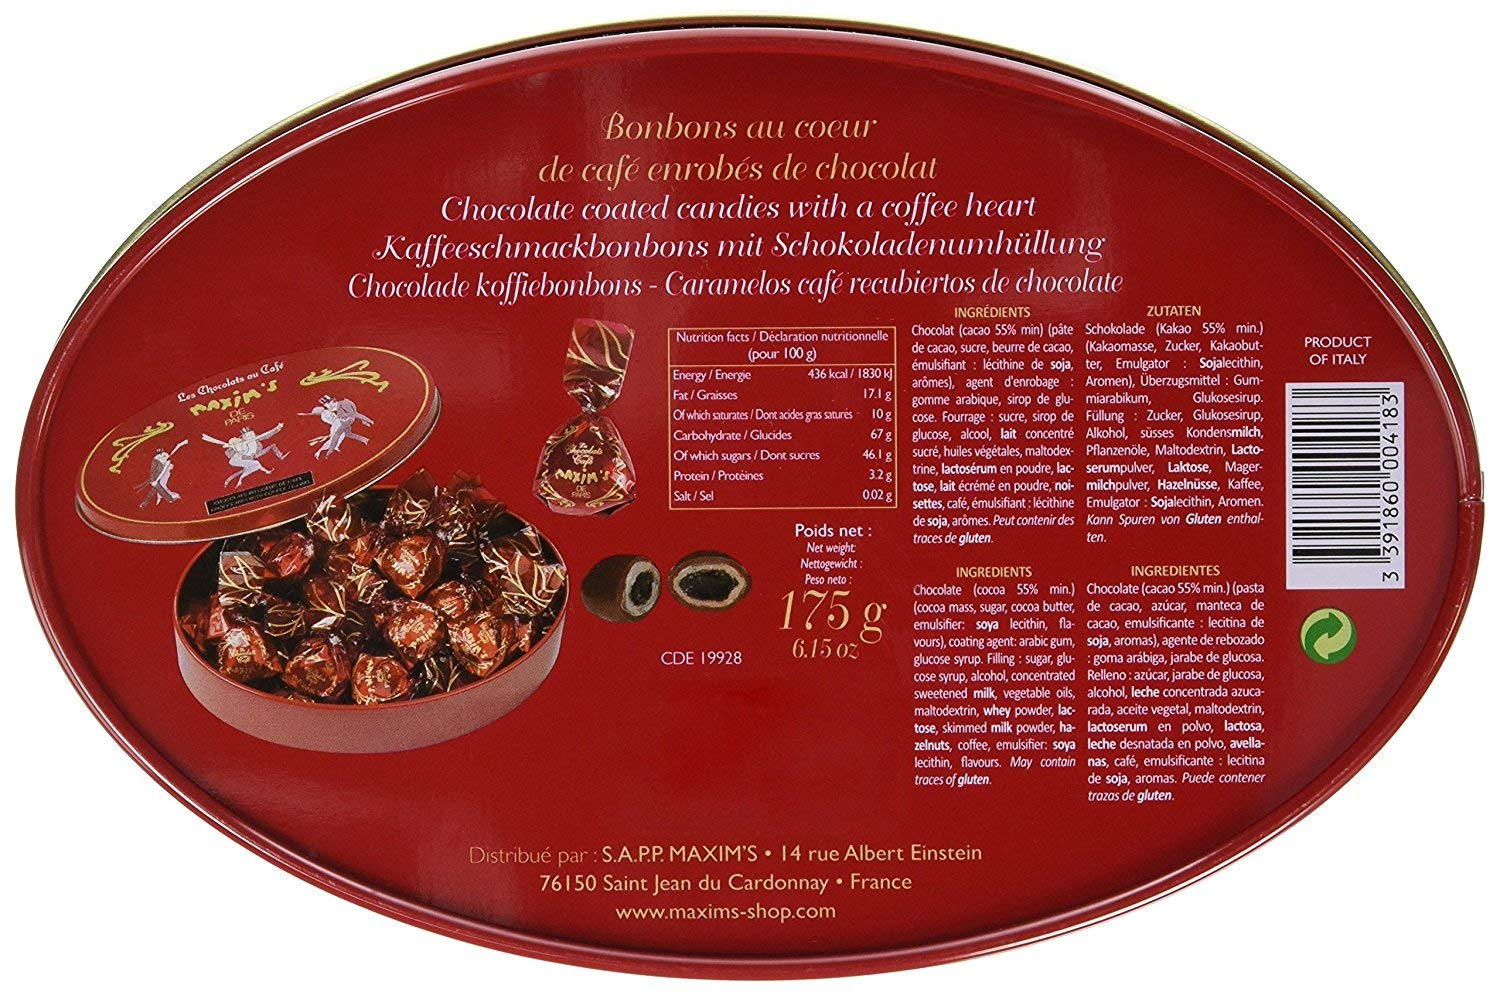 Amazon.com : Maxims de Paris French Gourmet Dark Chocolate Candies with a Heart of Coffee Gift Tin 6.2oz : Grocery & Gourmet Food